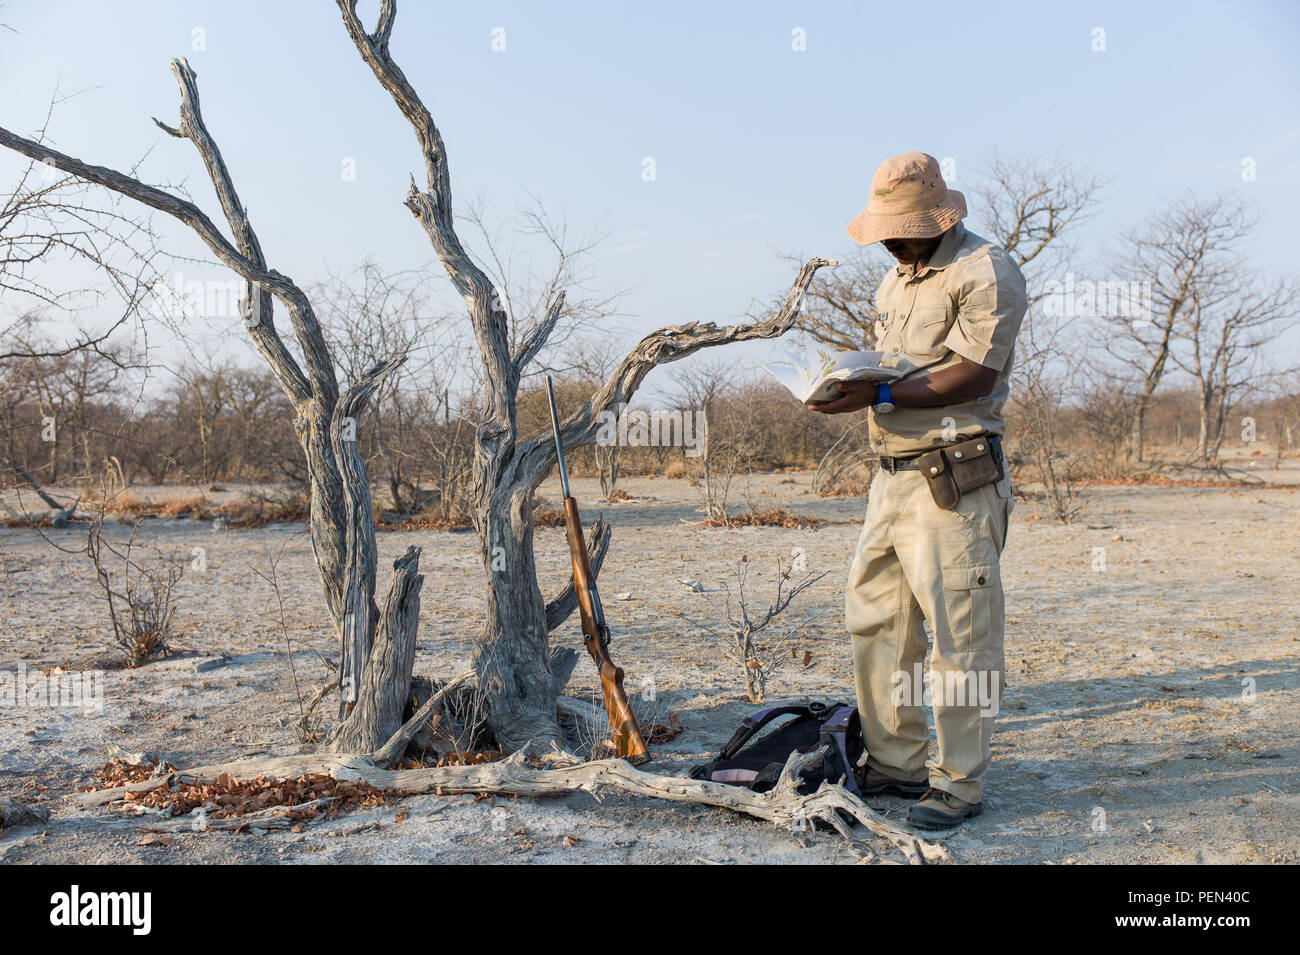 A ranger guides a bush walk and identifies trees in Ongava Game Reserve, Kunene Region, Namibia. - Stock Image